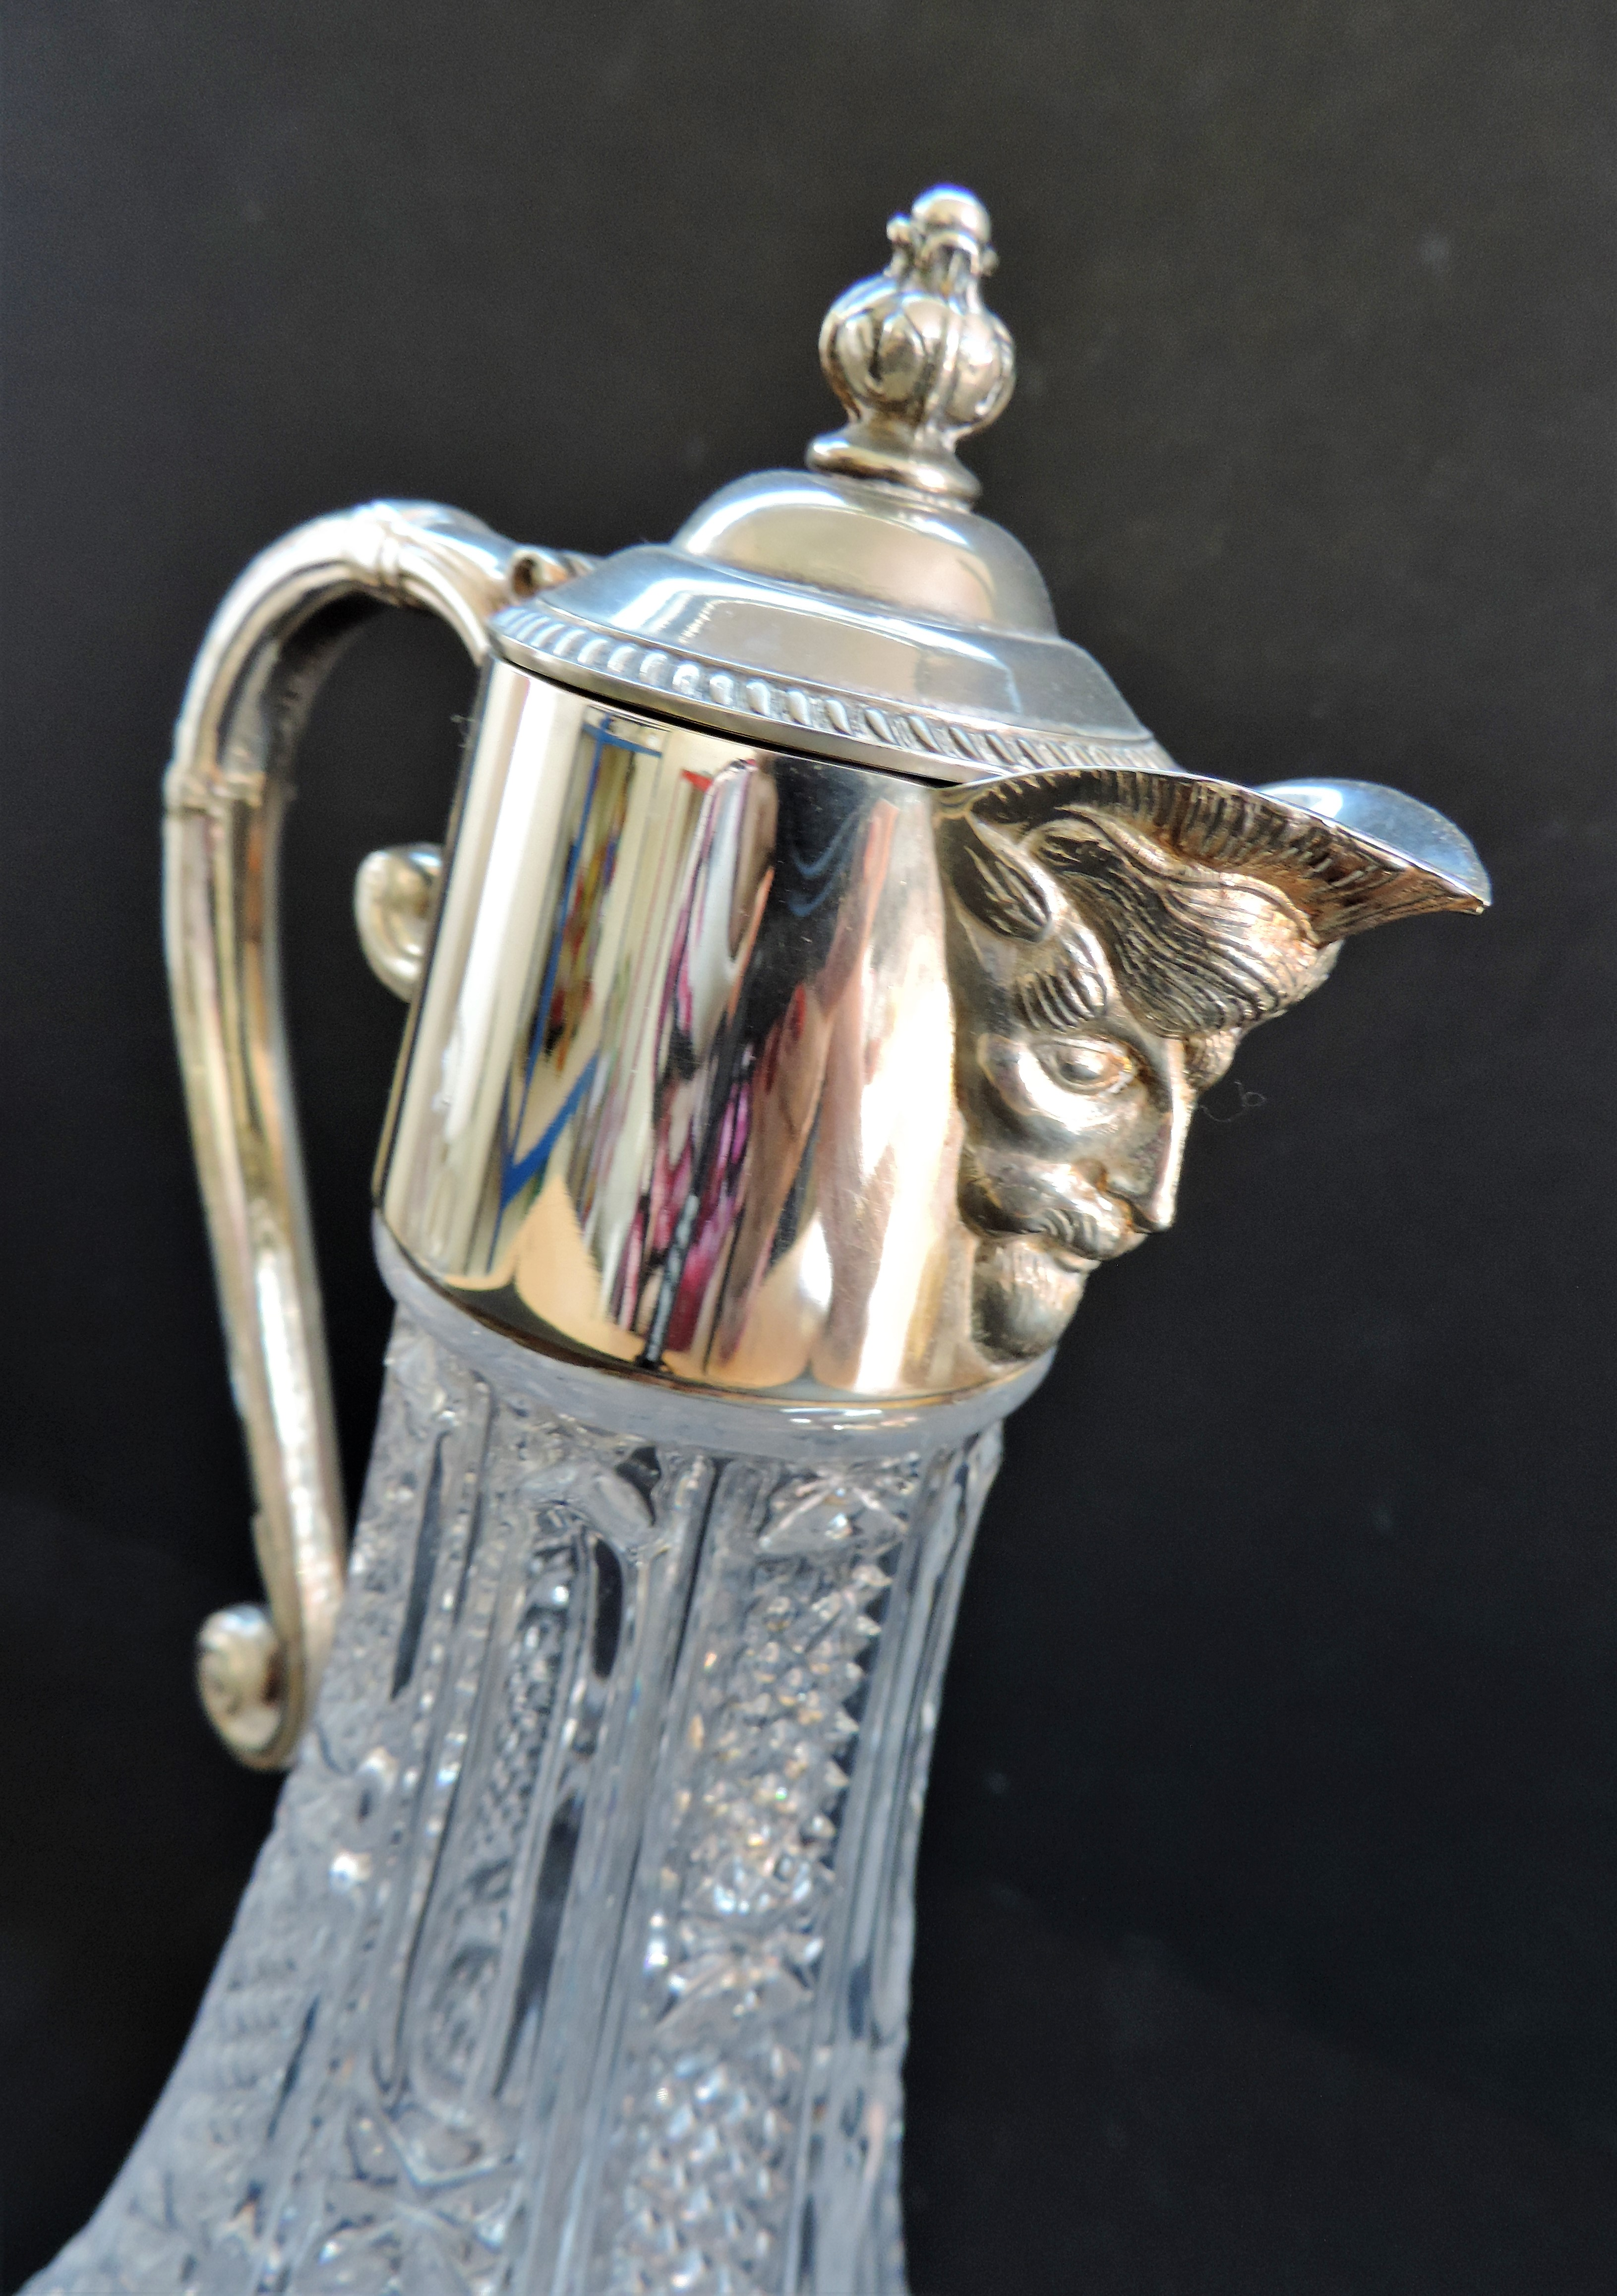 Hand-Cut Crystal And Silver Plate Bacchus Claret Jug - Image 3 of 4